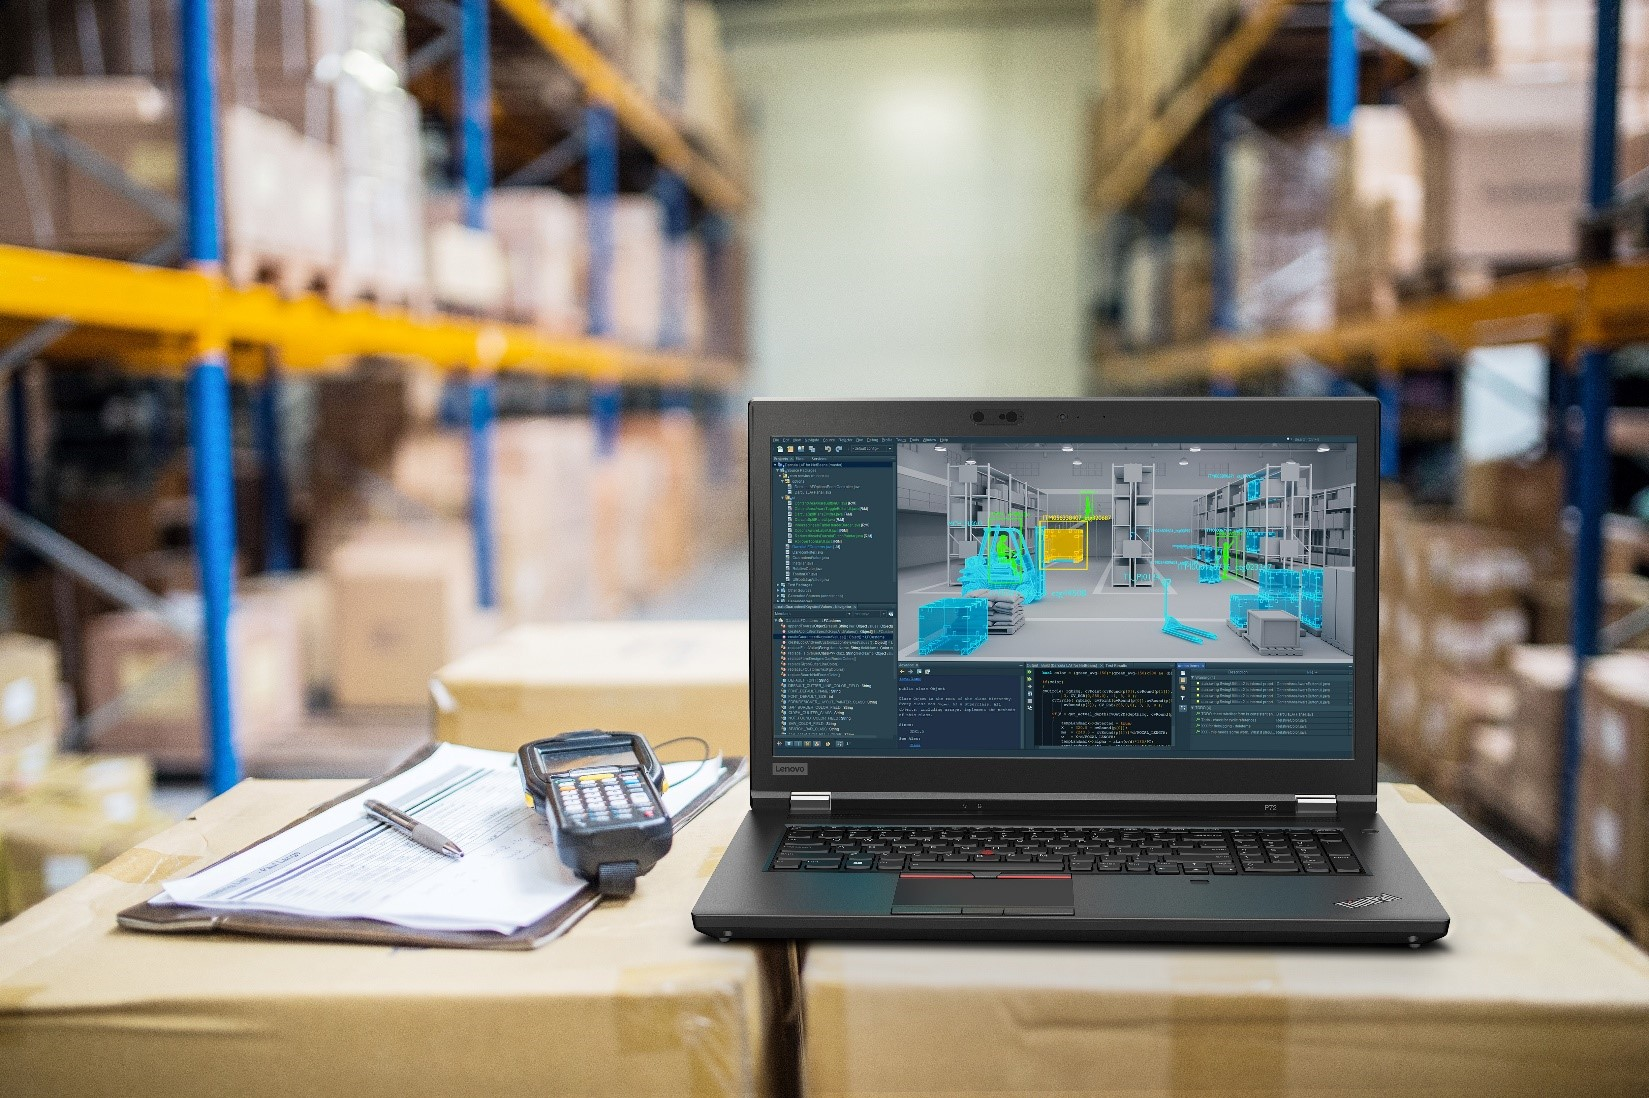 Image of a Lenovo ThinkPad sitting open in a warehouse.